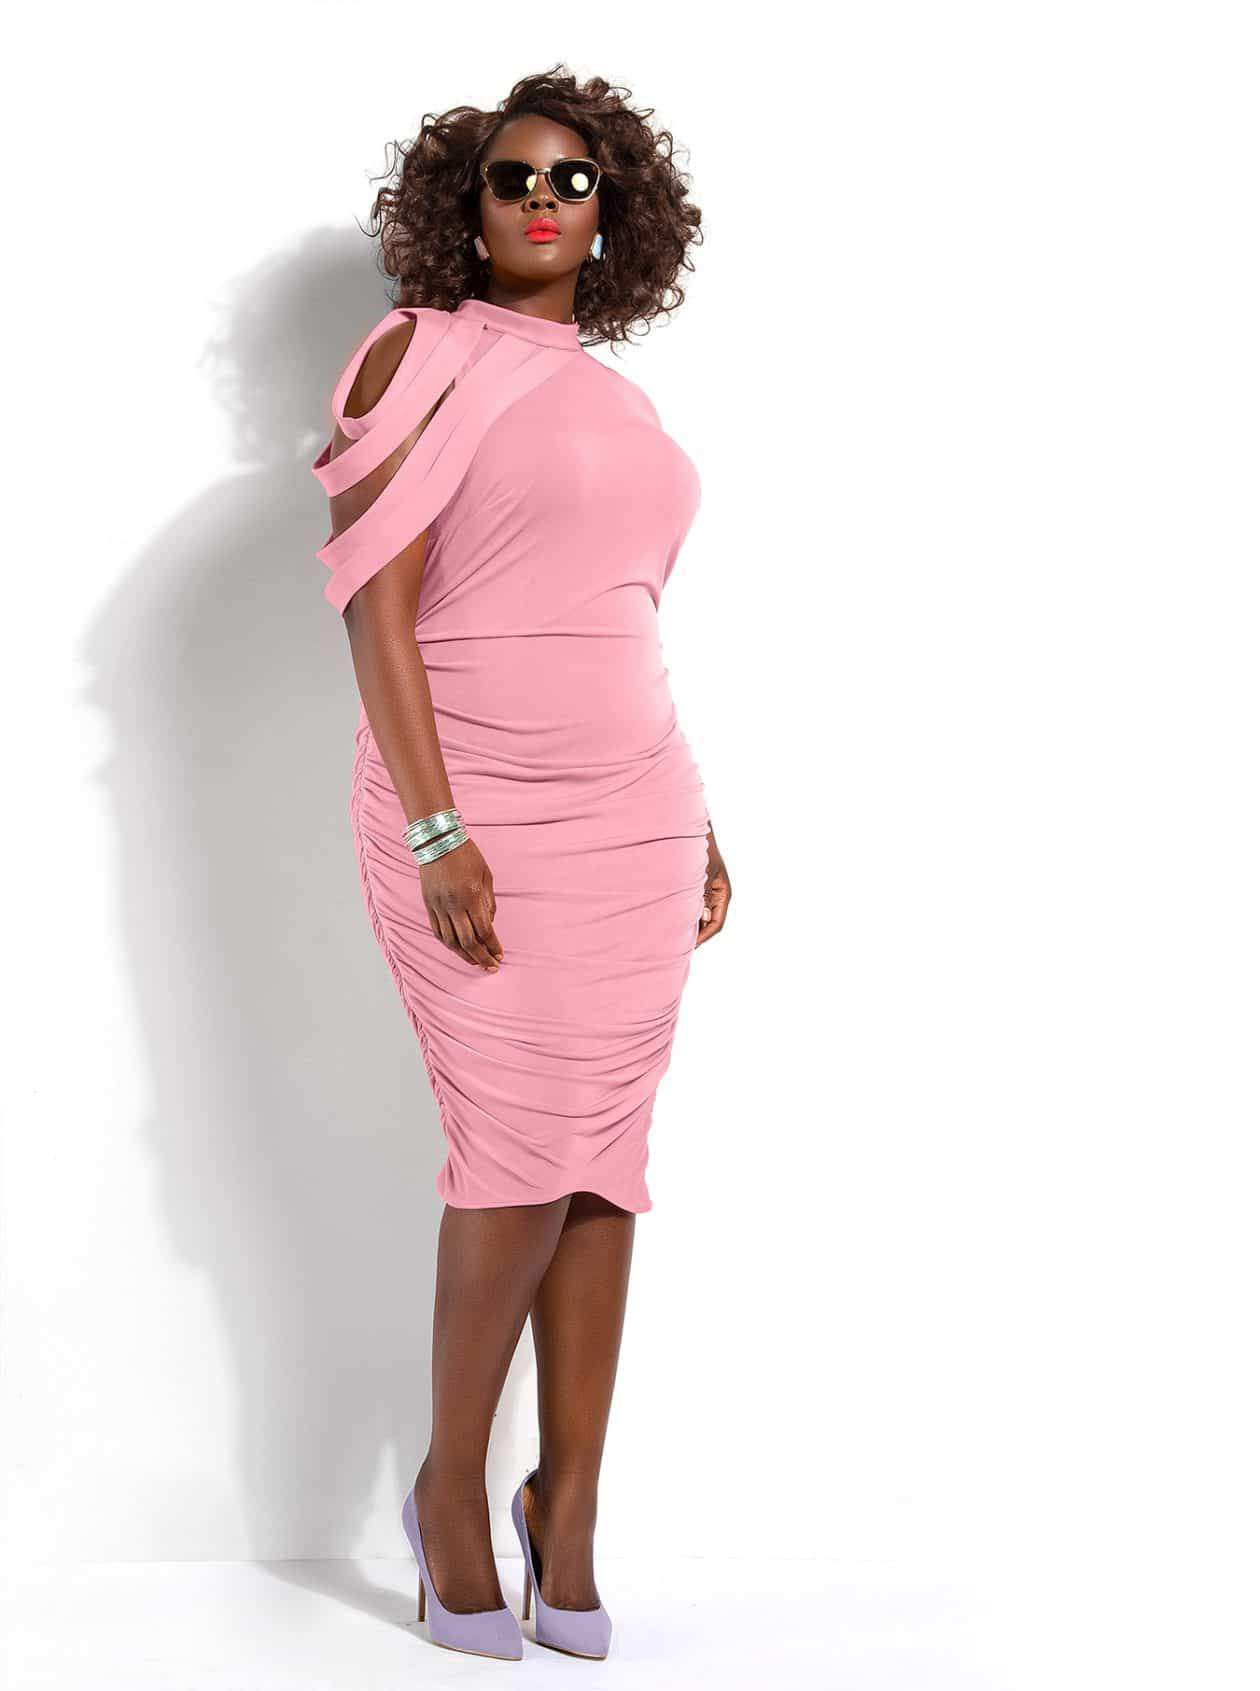 10 Plus Size Wedding Guest Dress Ideas on TheCurvyFashionista.com #TCFStyle